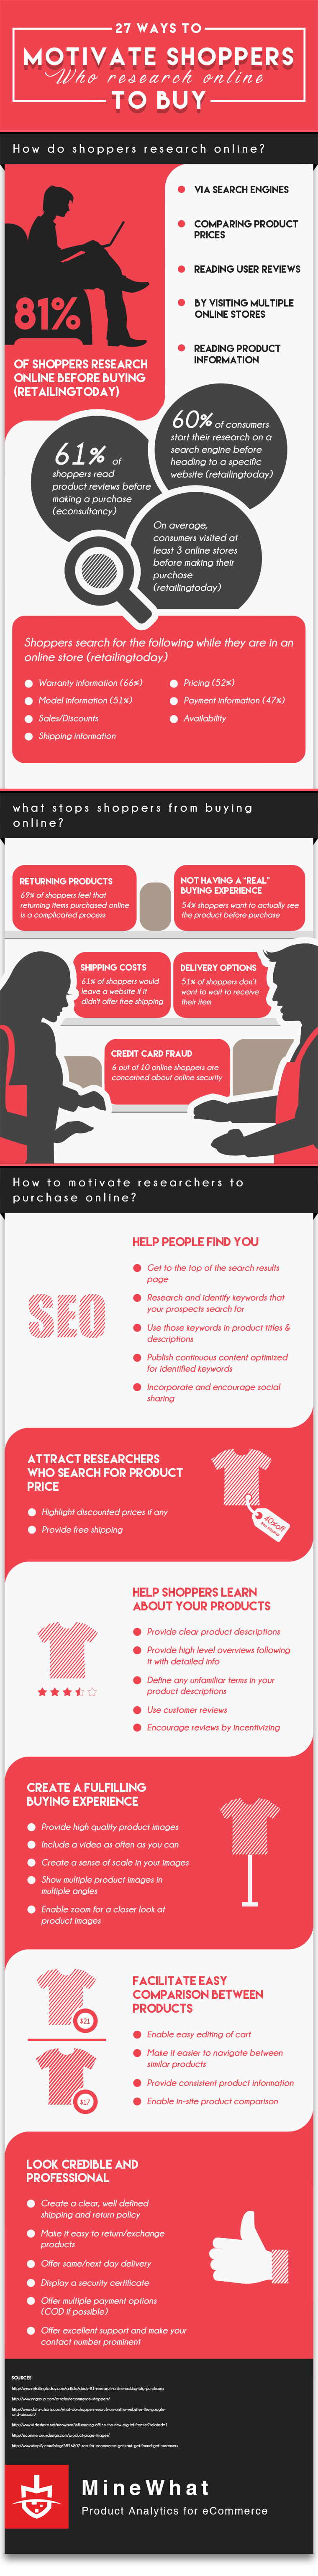 MOTIVATE shoppers who research online TO BUY